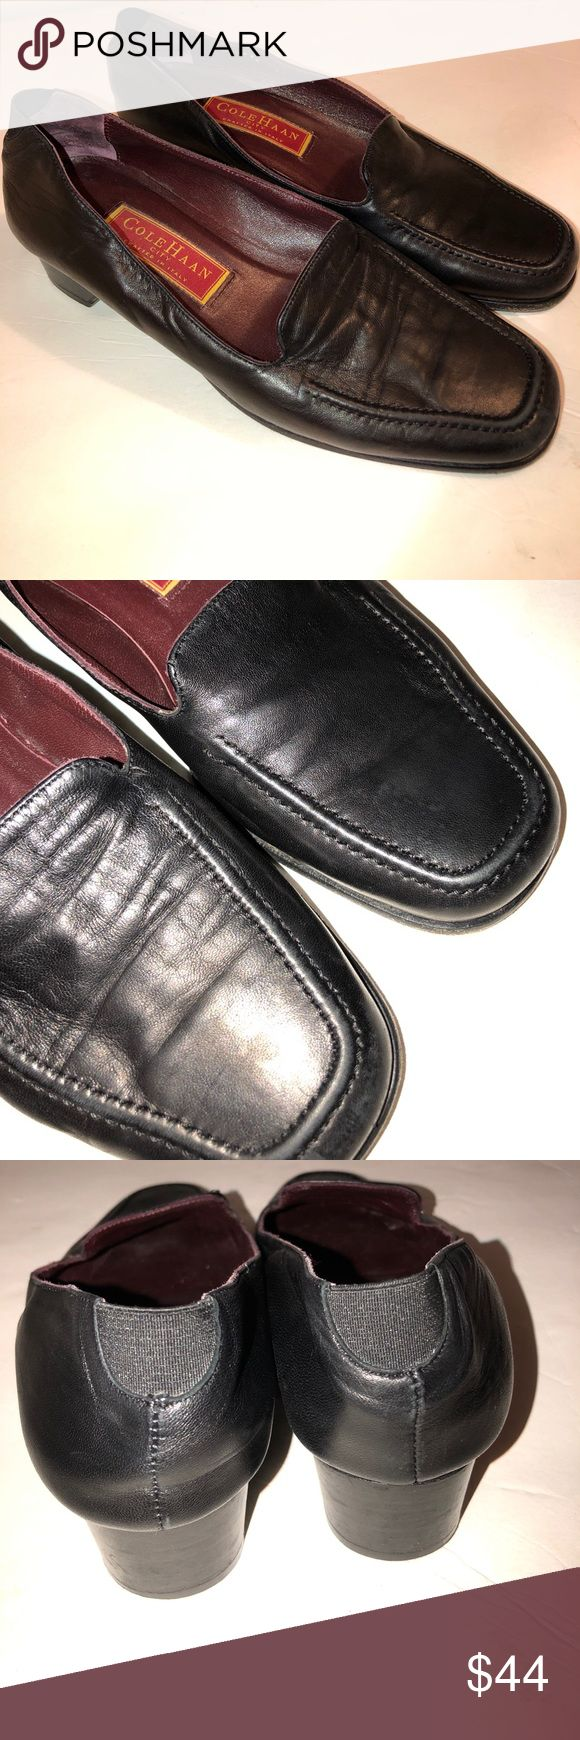 COLE HAAN CITY LEATHER SLIDE SLIP ON LOAFERS HEEL Beautiful and classic Cole Haan soft leather slip on loafers with slight wooden heel. These gorgeous shoes were made in Italy. They are a size 6.5 and in EUC, worn once or twice and then stored in closet since. These well made shoes are so comfortable and made to last a life time. Smoke and pet free home. Cole Haan Shoes Flats & Loafers